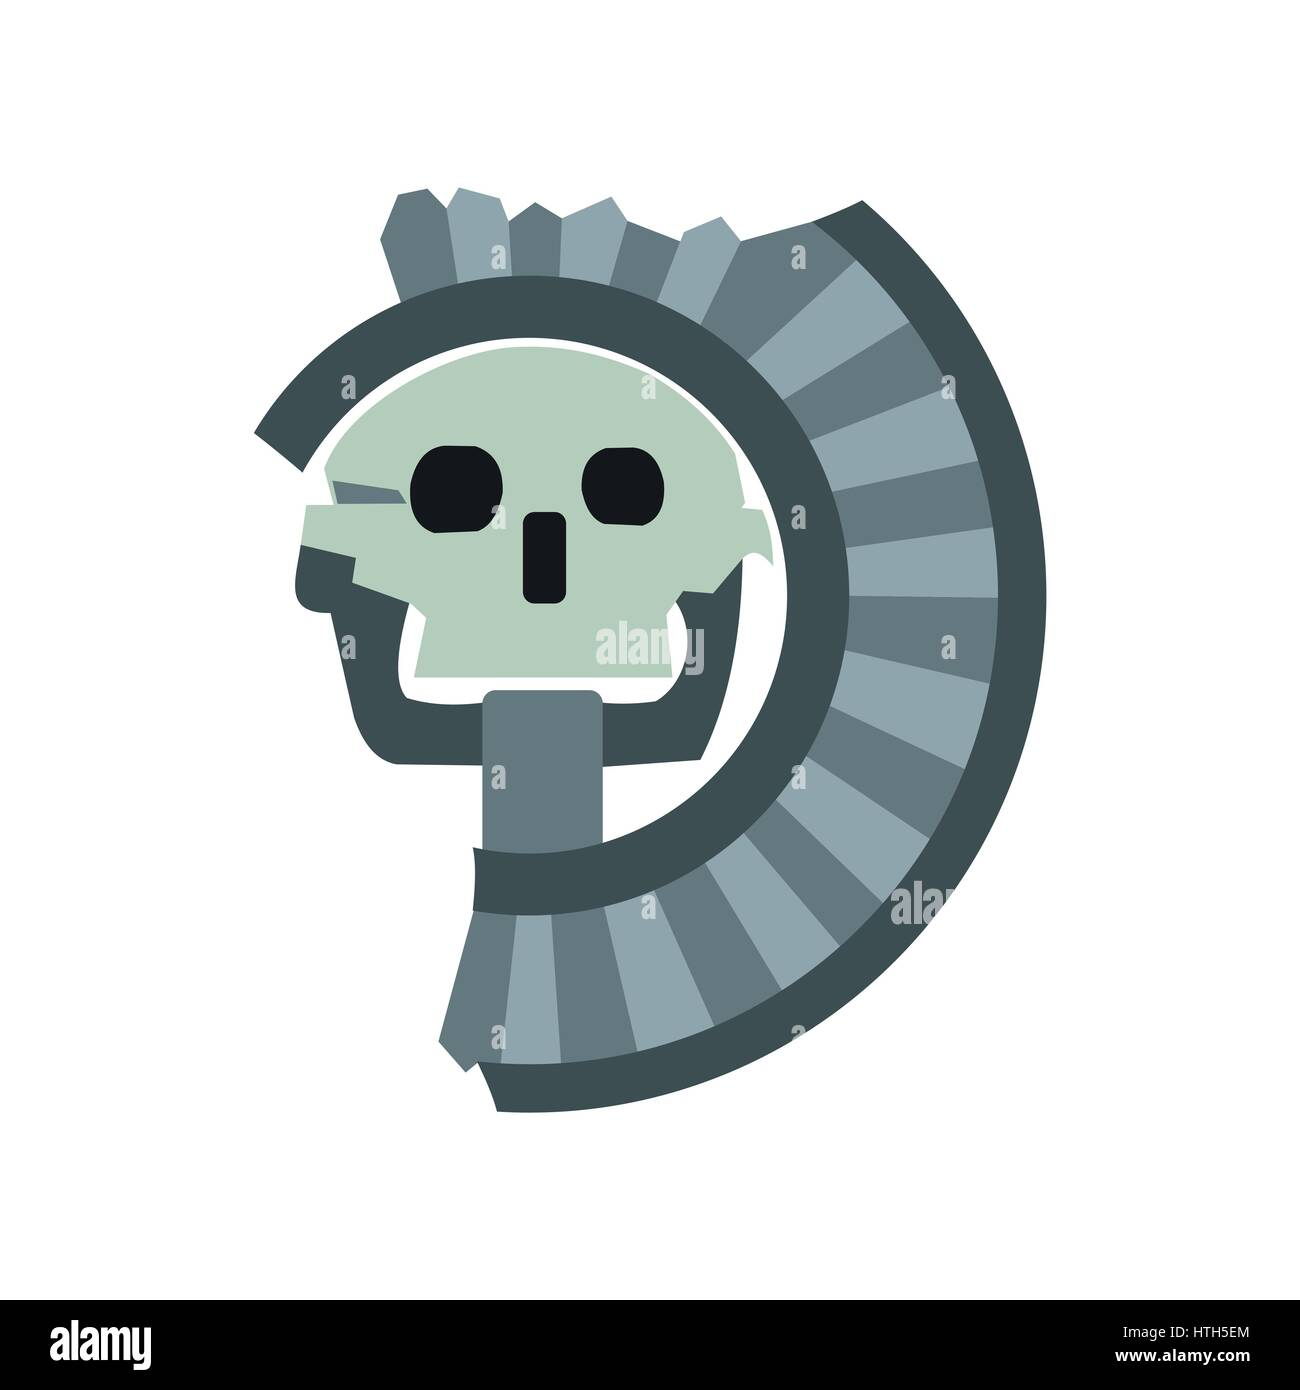 Skull the god of death of aztecs icon flat style stock vector art skull the god of death of aztecs icon flat style biocorpaavc Images